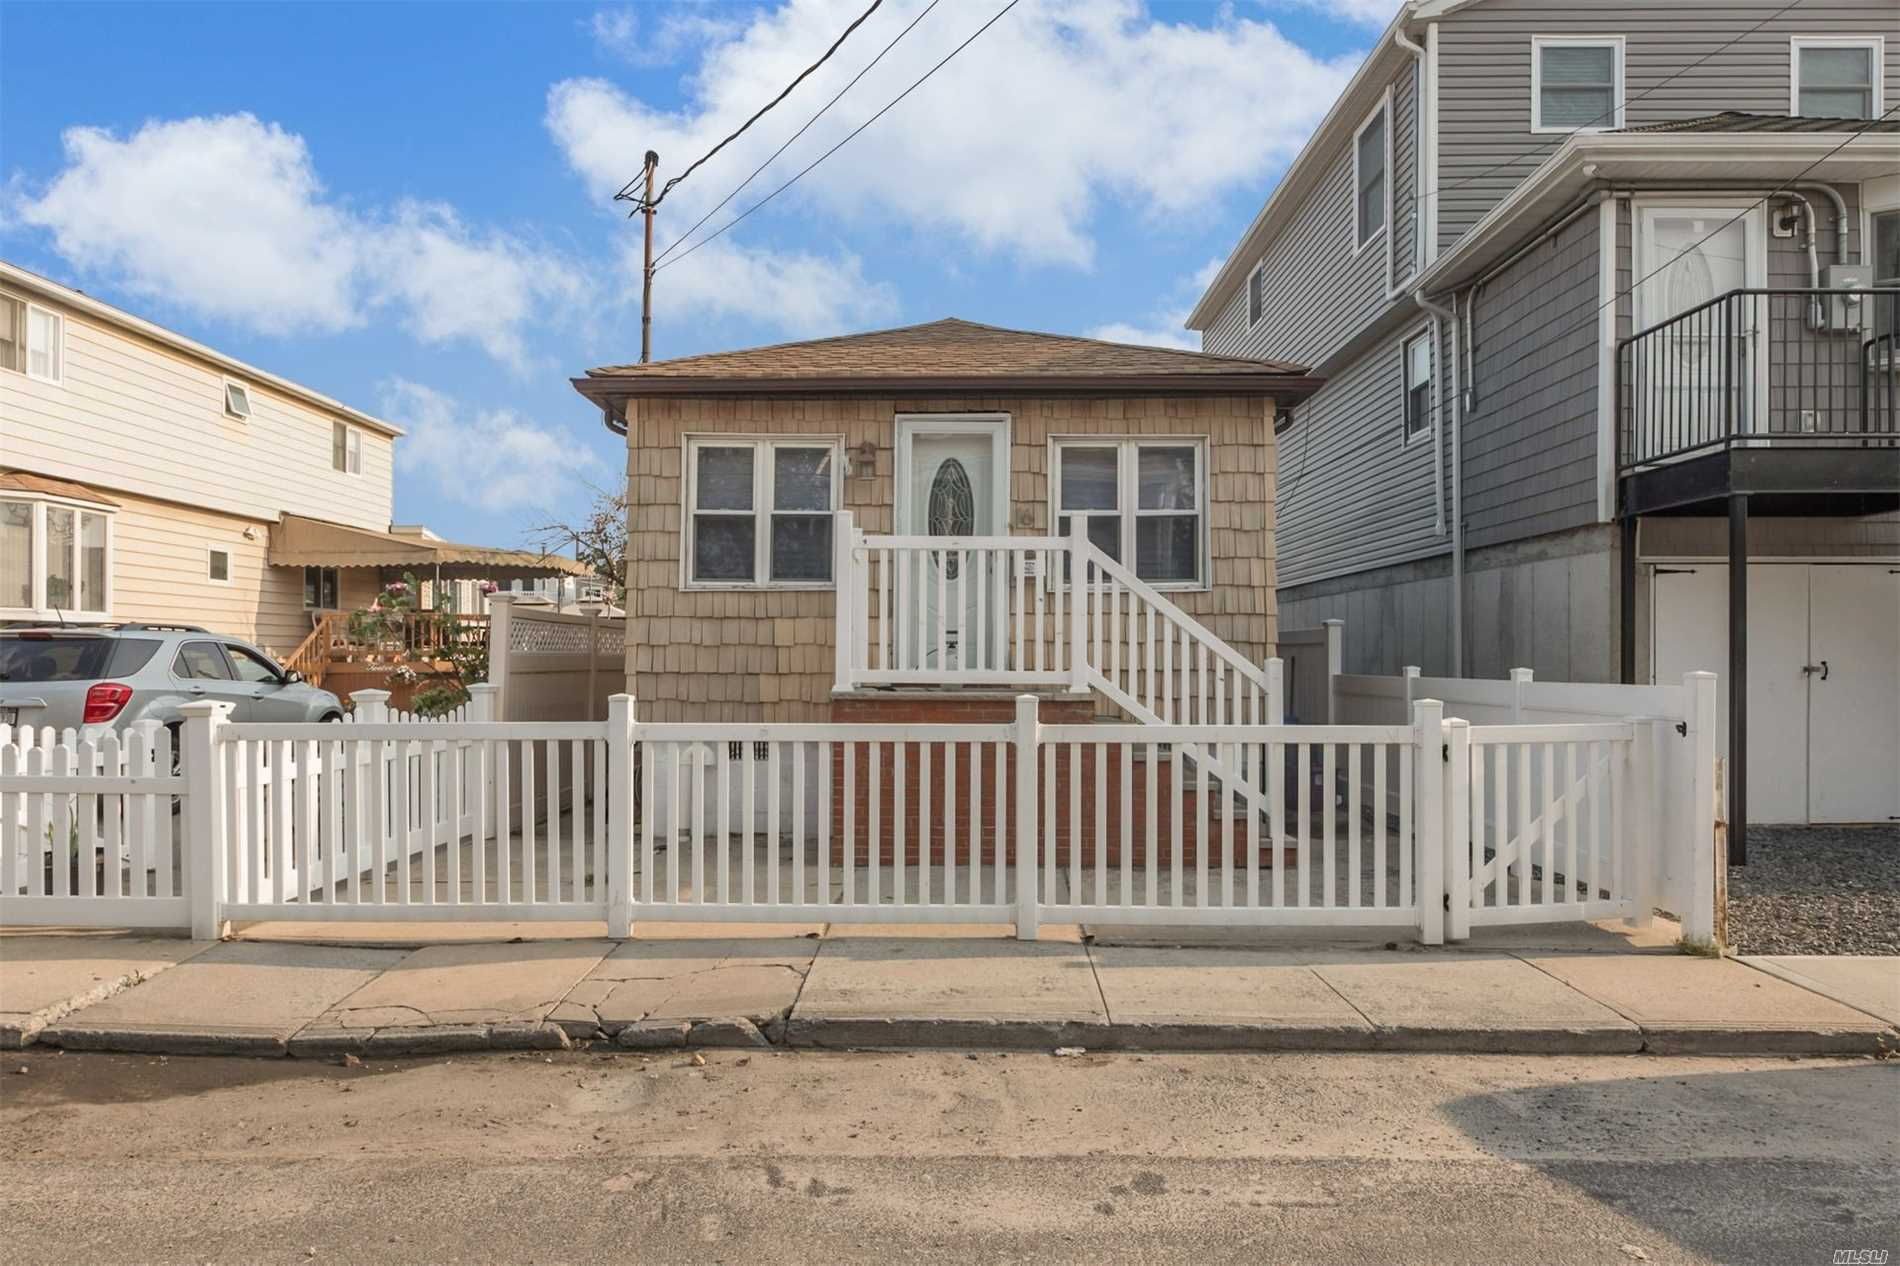 16 W 15th Rd Broad Channel, NY 11693